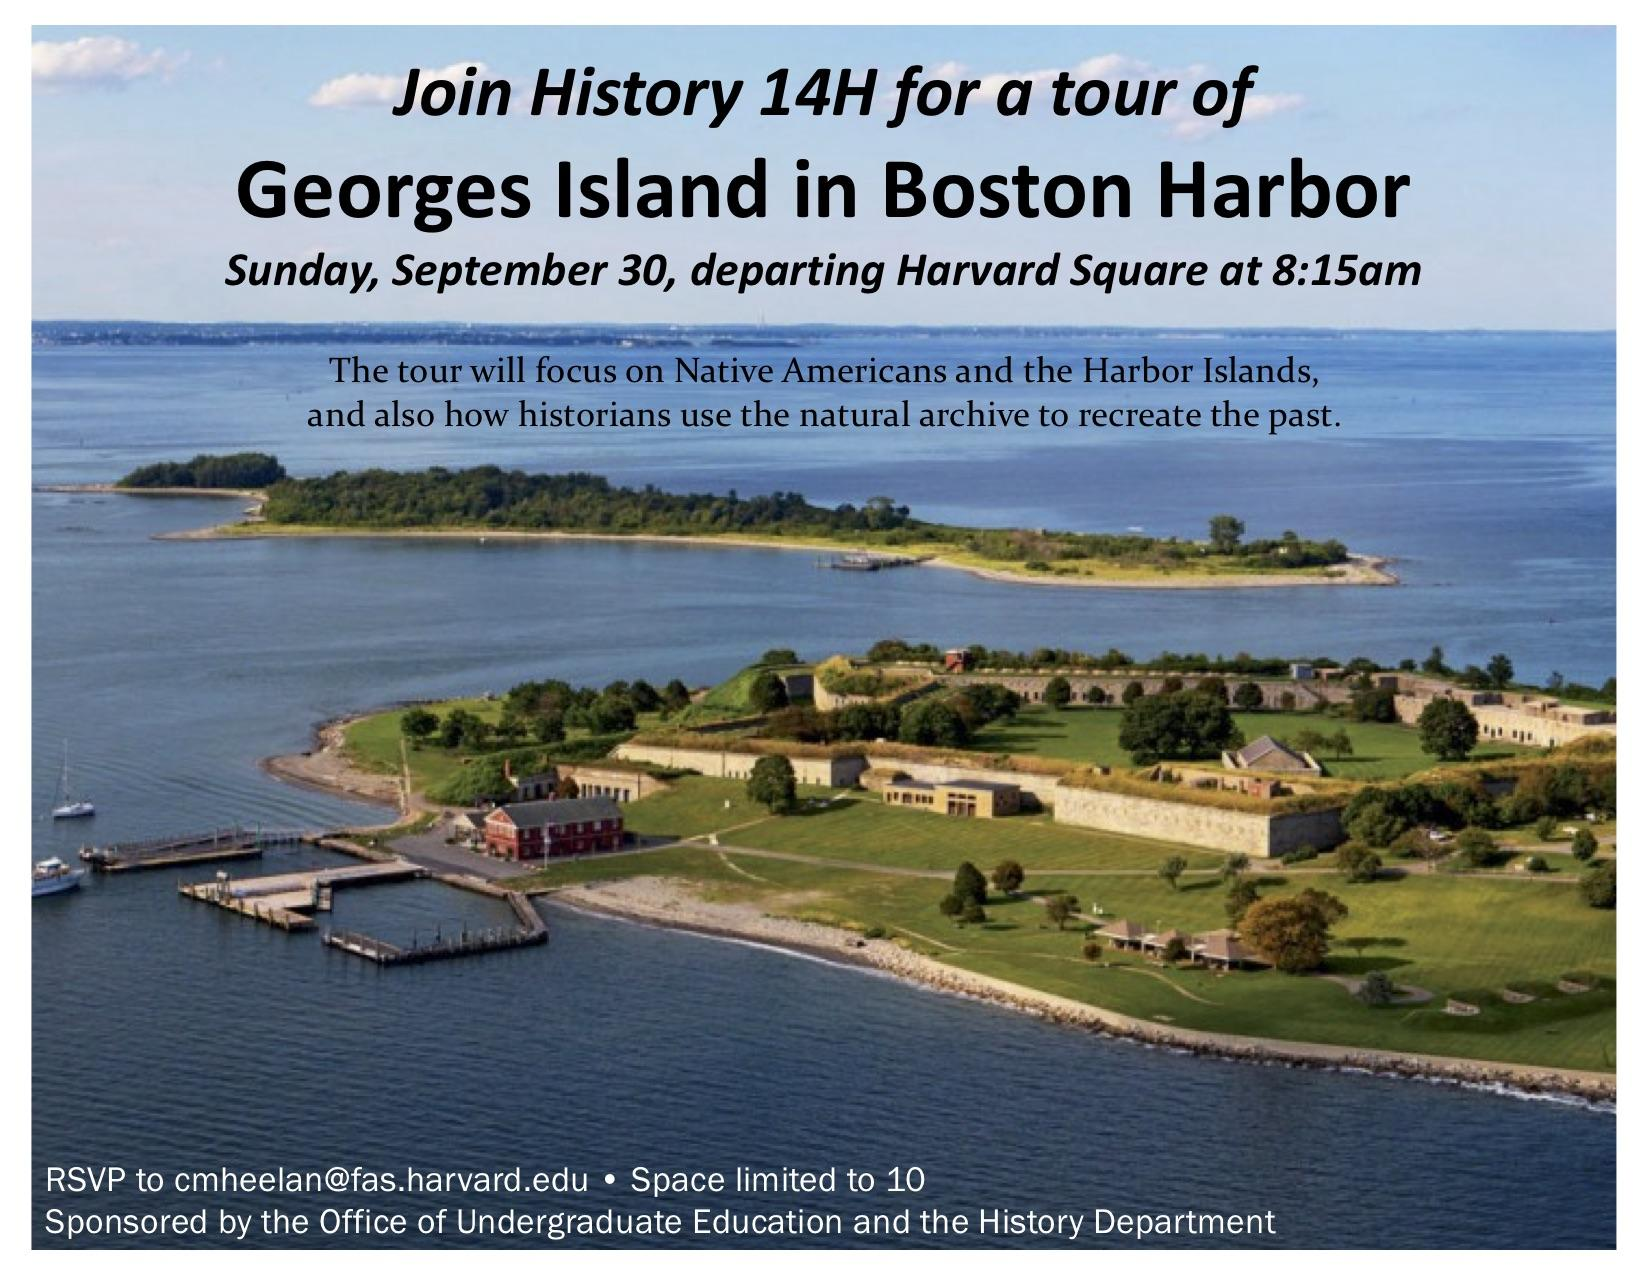 Image of outing to Georges Island